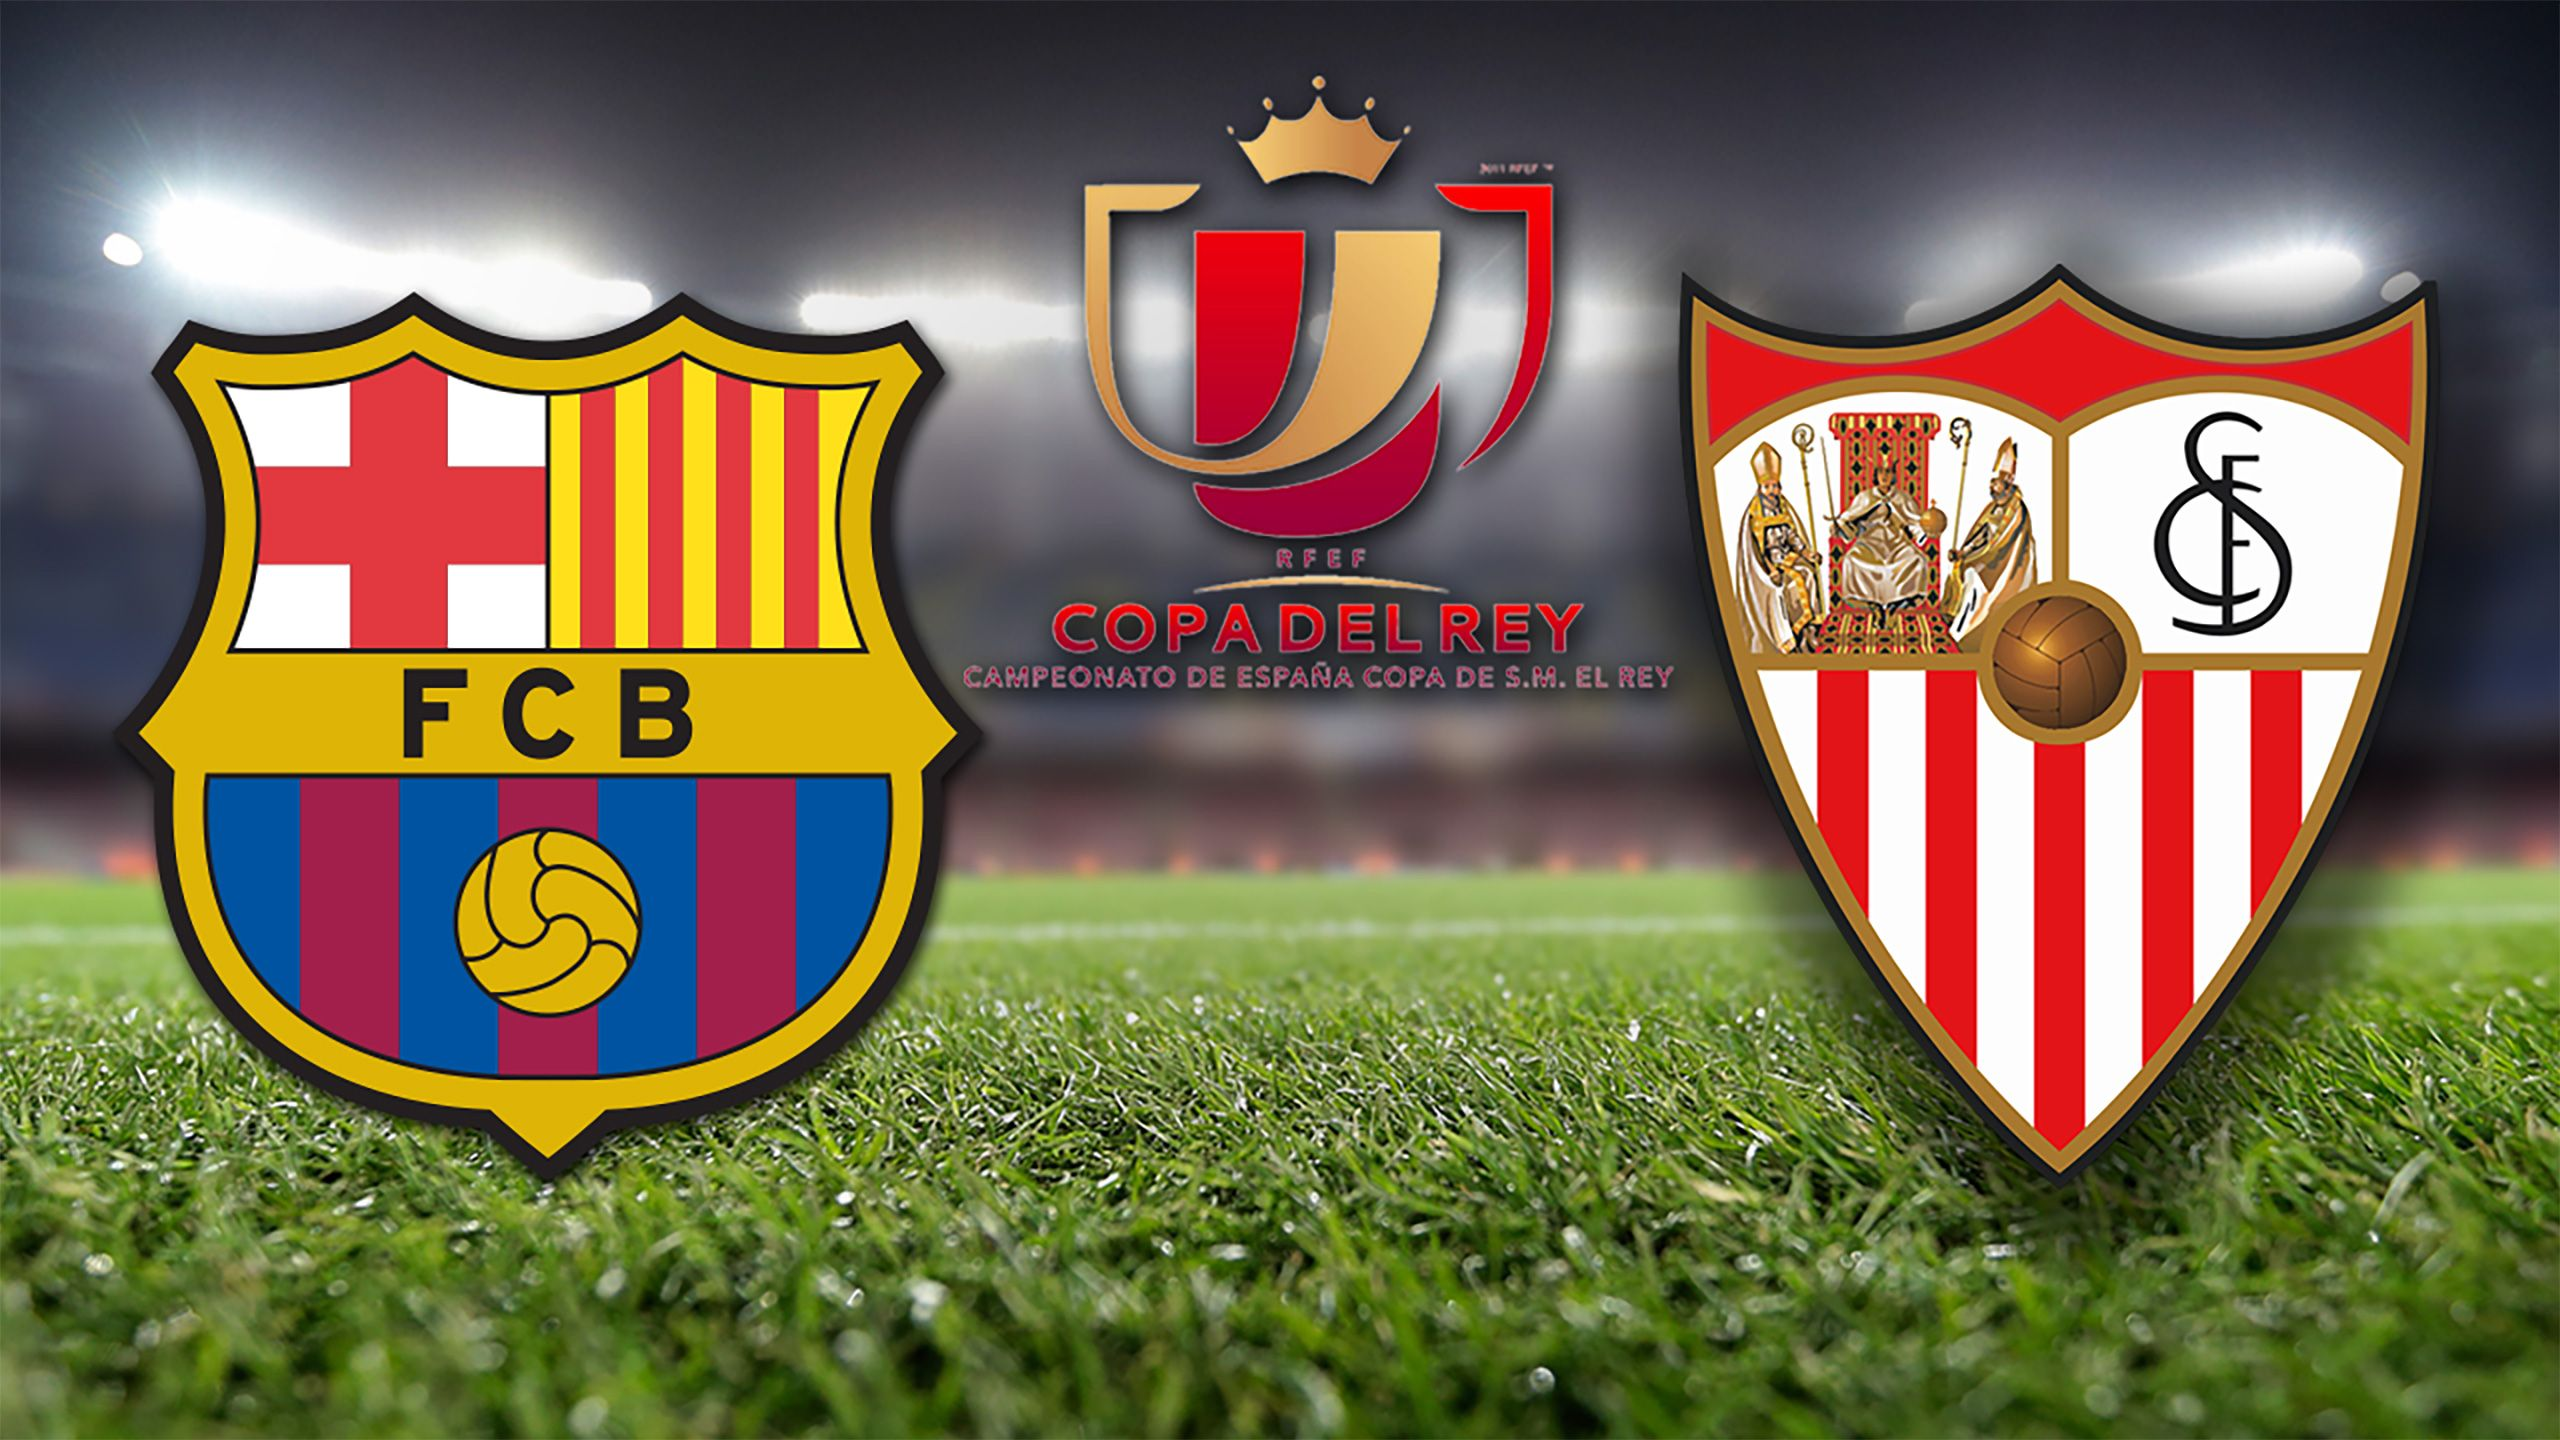 Copa del Rey Final: Barcelona vs. Sevilla